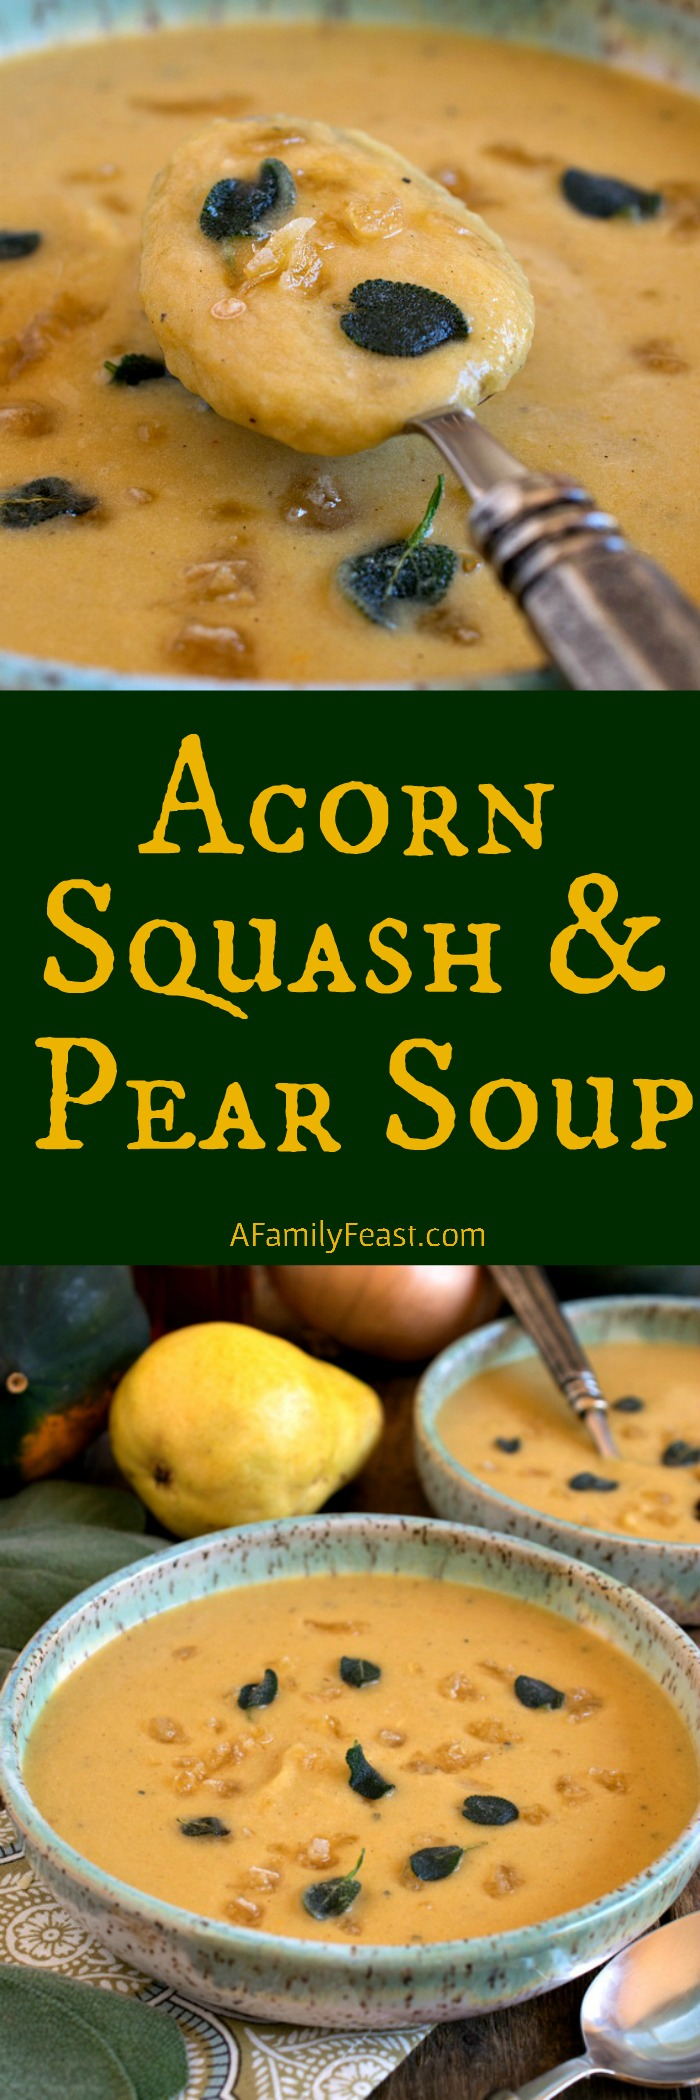 Acorn Squash and Pear Soup - A delicious taste of Fall! This creamy soup is made with acorn squash and pears with crispy sage and crystallized ginger on top.